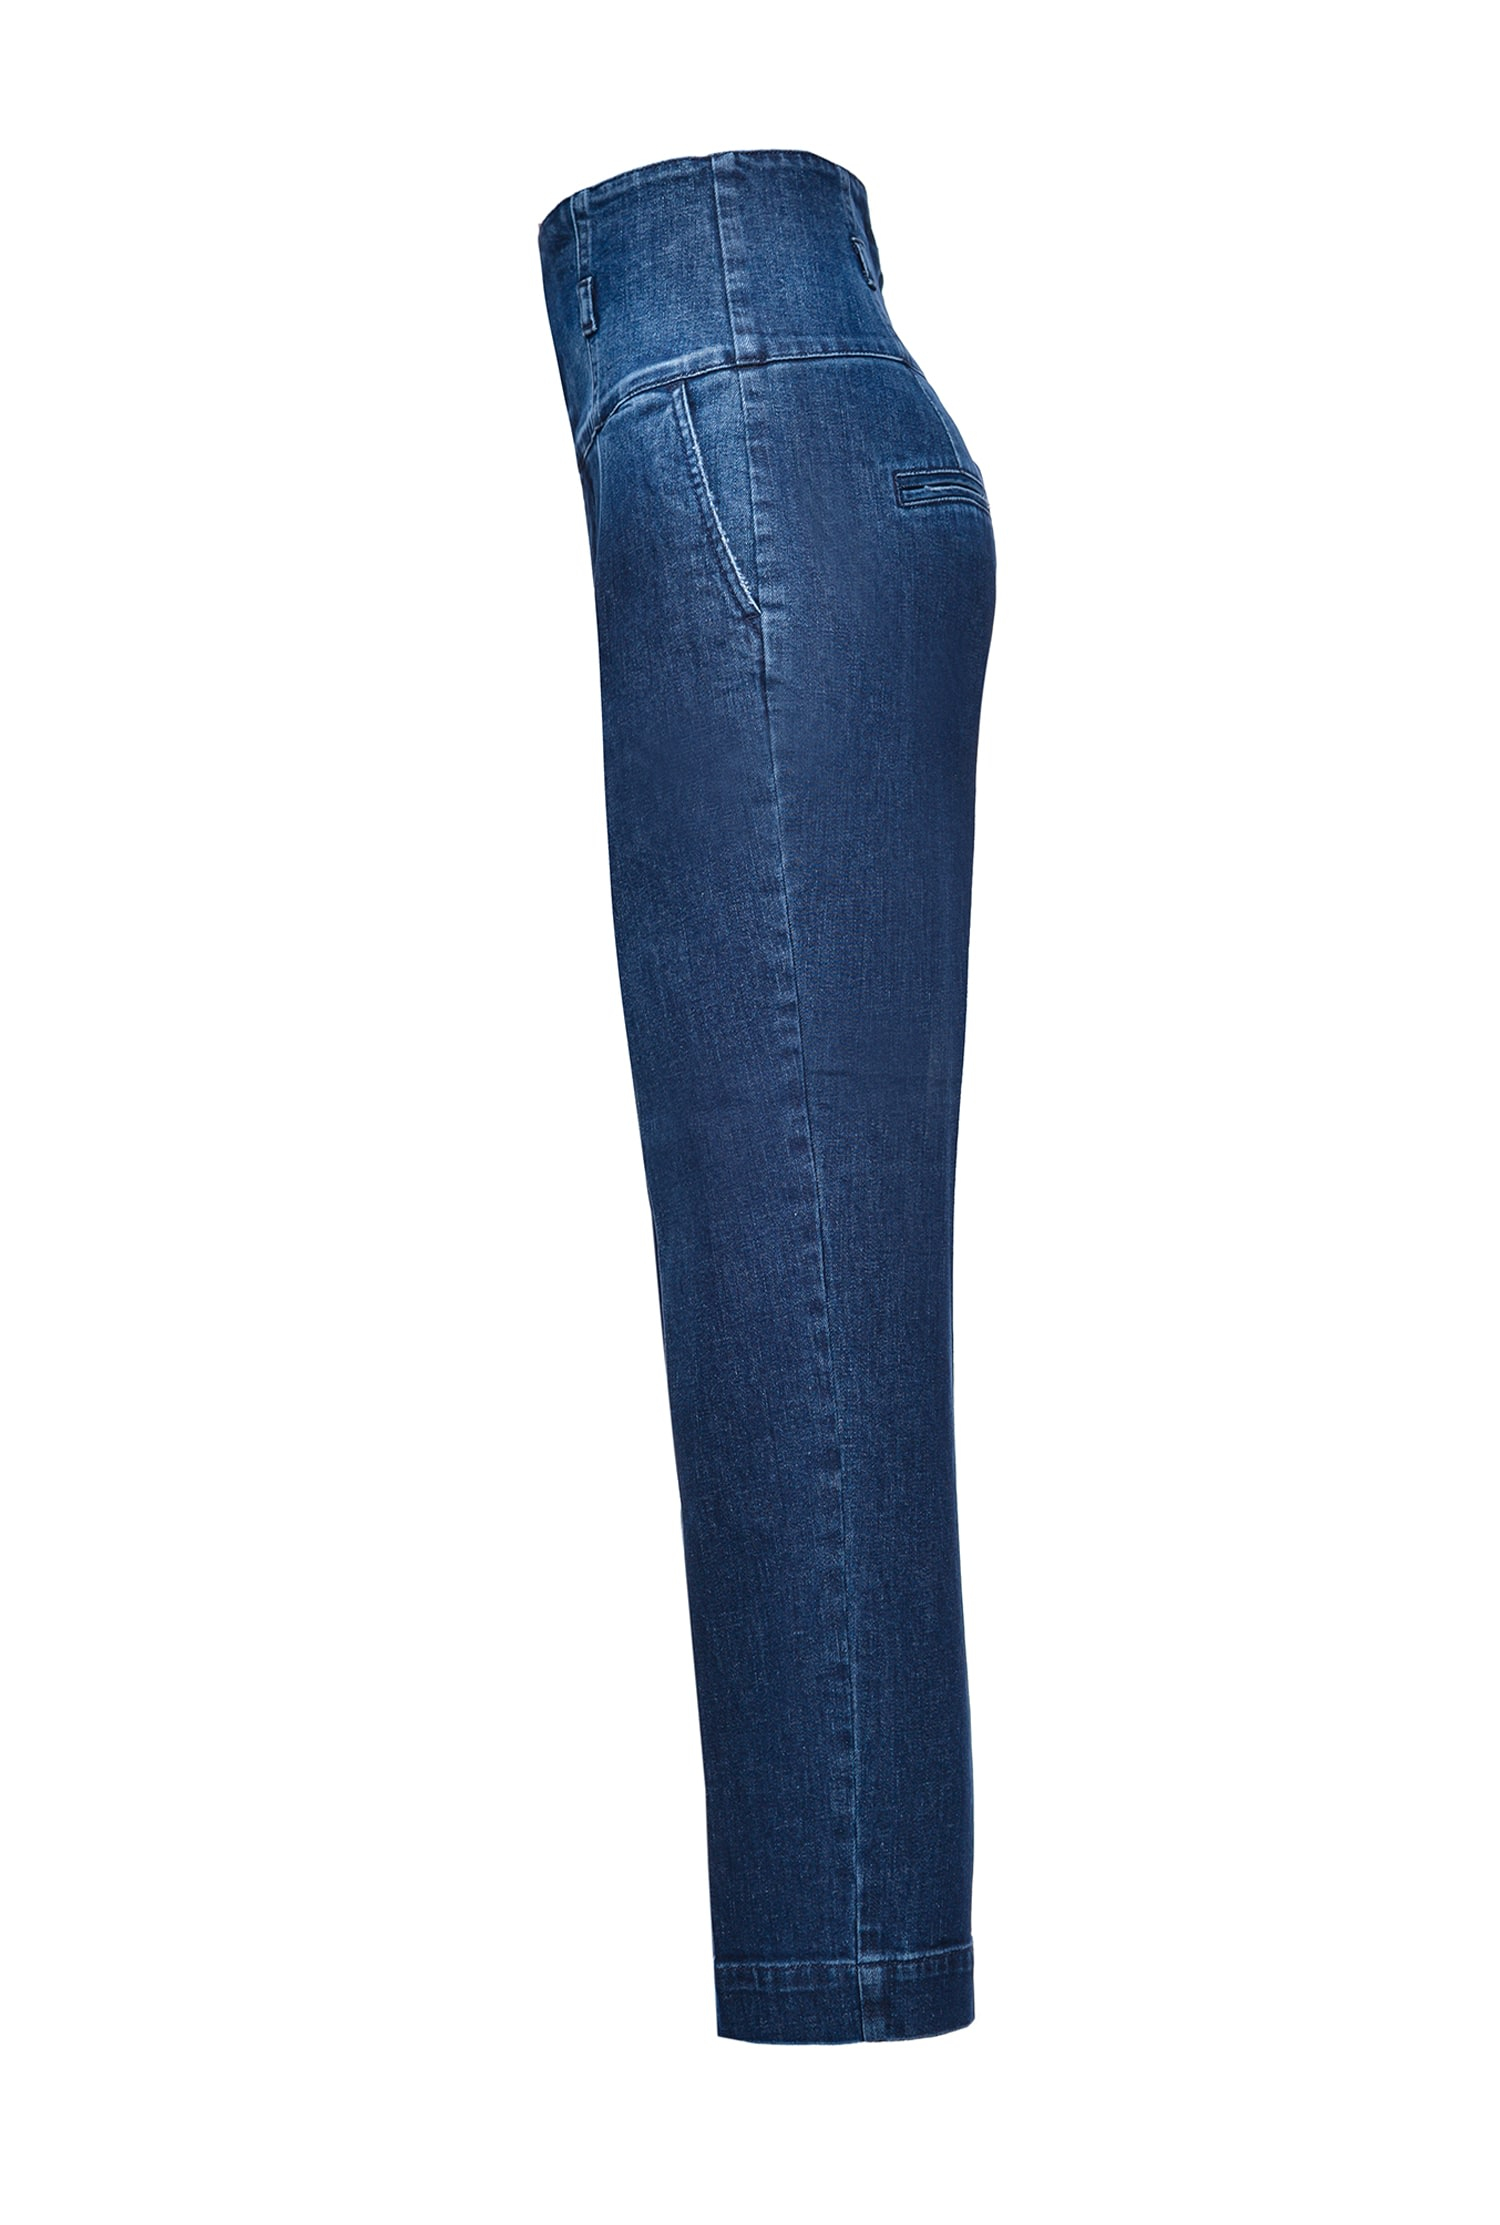 SHOPPING ON LINE PINKO JEANS CHINOS CON VITA ALTA A BUSTIER ARIEL 3 NEW COLLECTION WOMEN'S FALL WINTER 2020/21